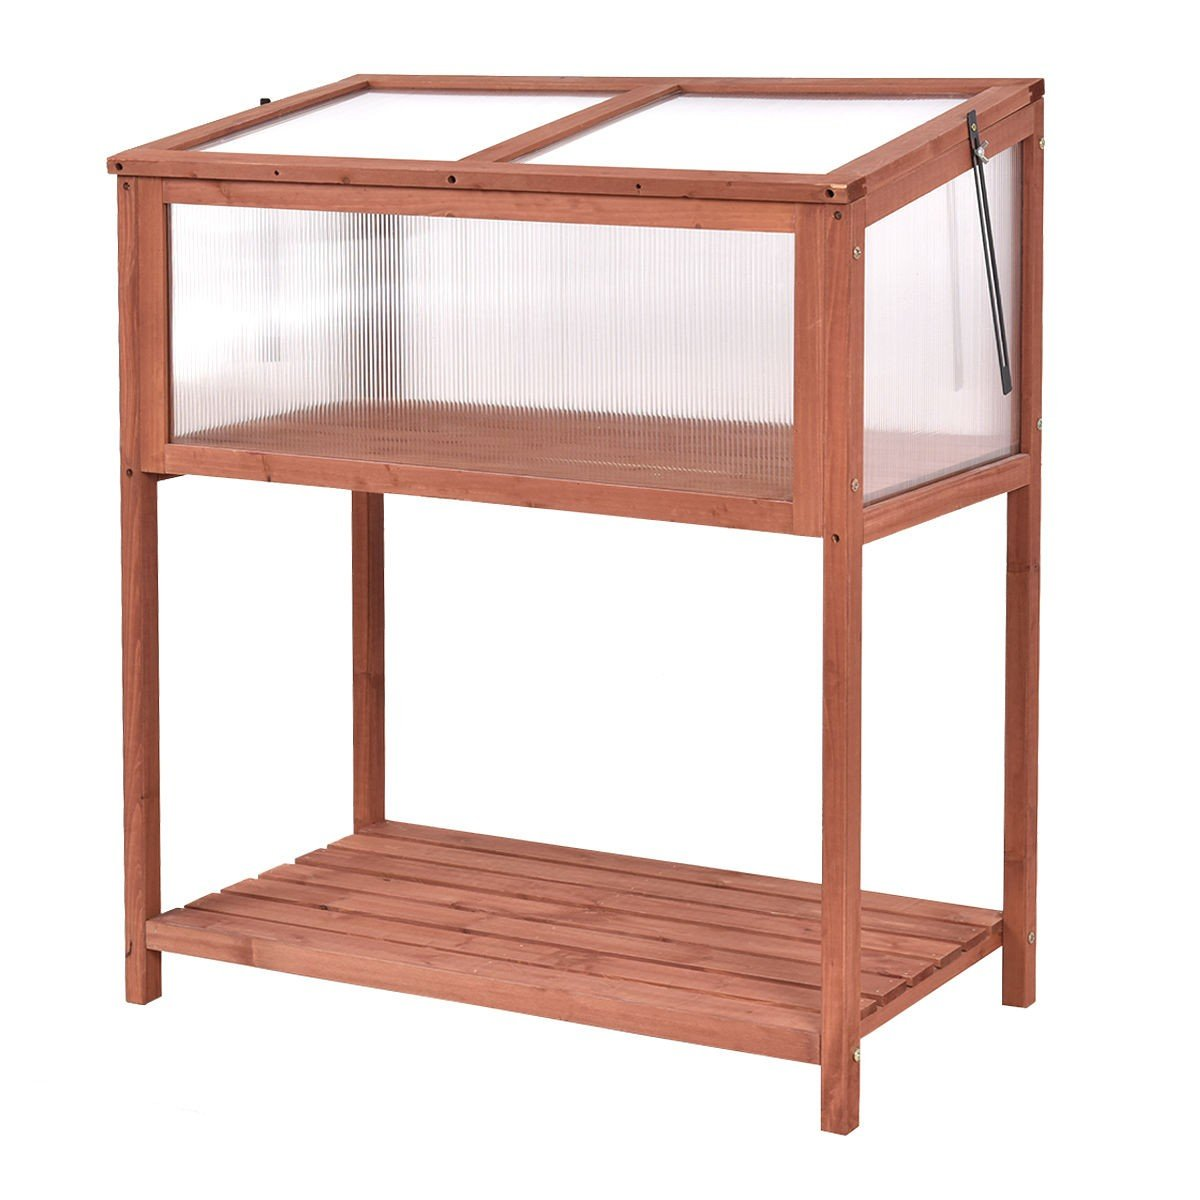 Garden Portable Wooden Cold Frame Greenhouse - By Choice Products